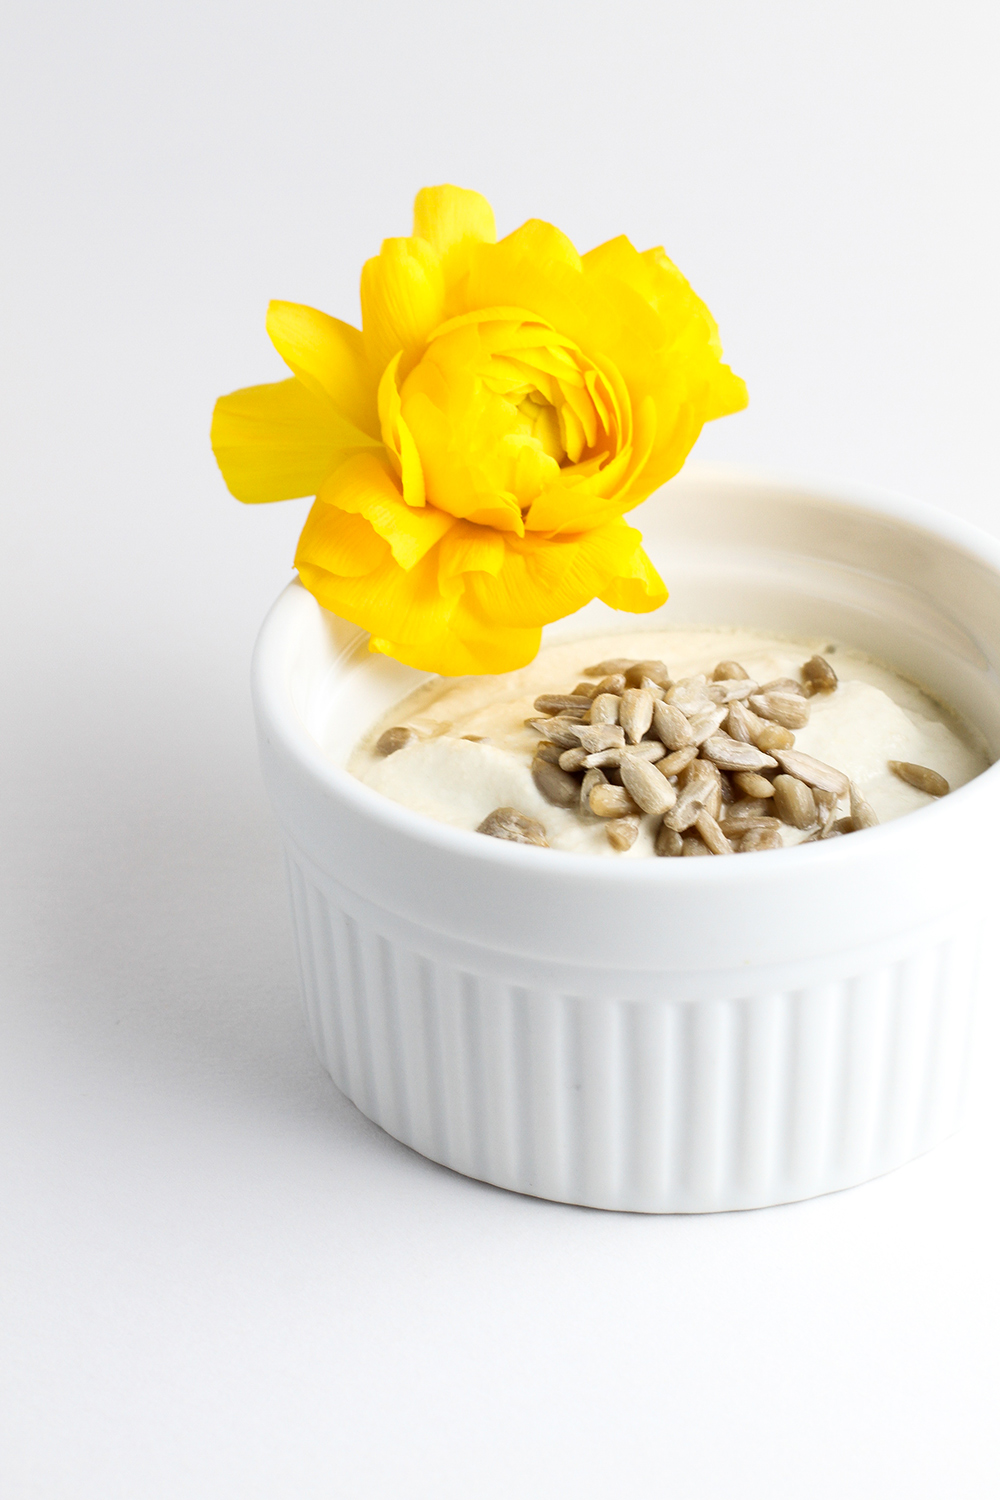 Copy of Sunflower Tahini